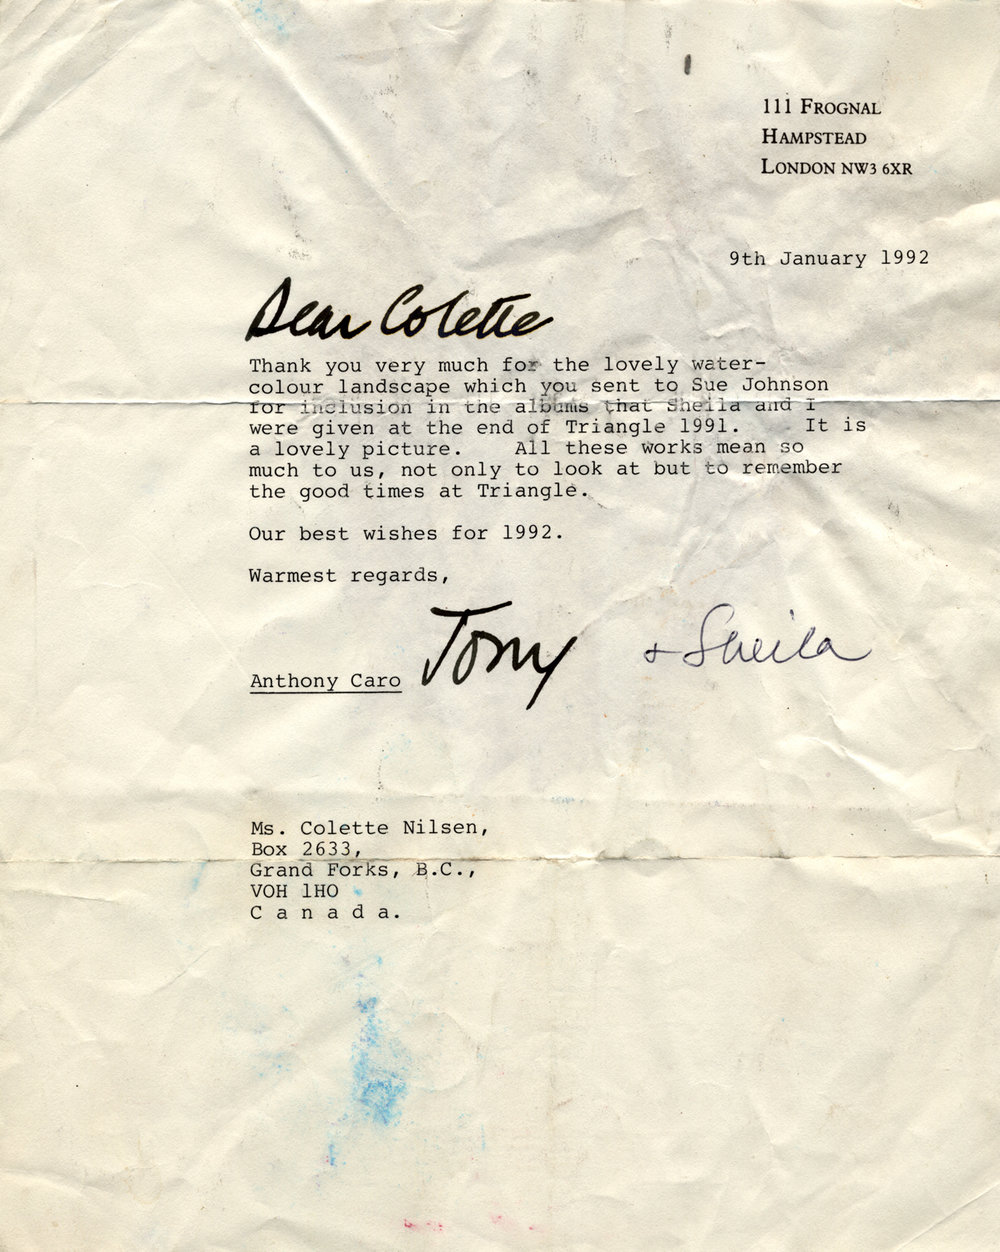 1992 Anthony Caro letter